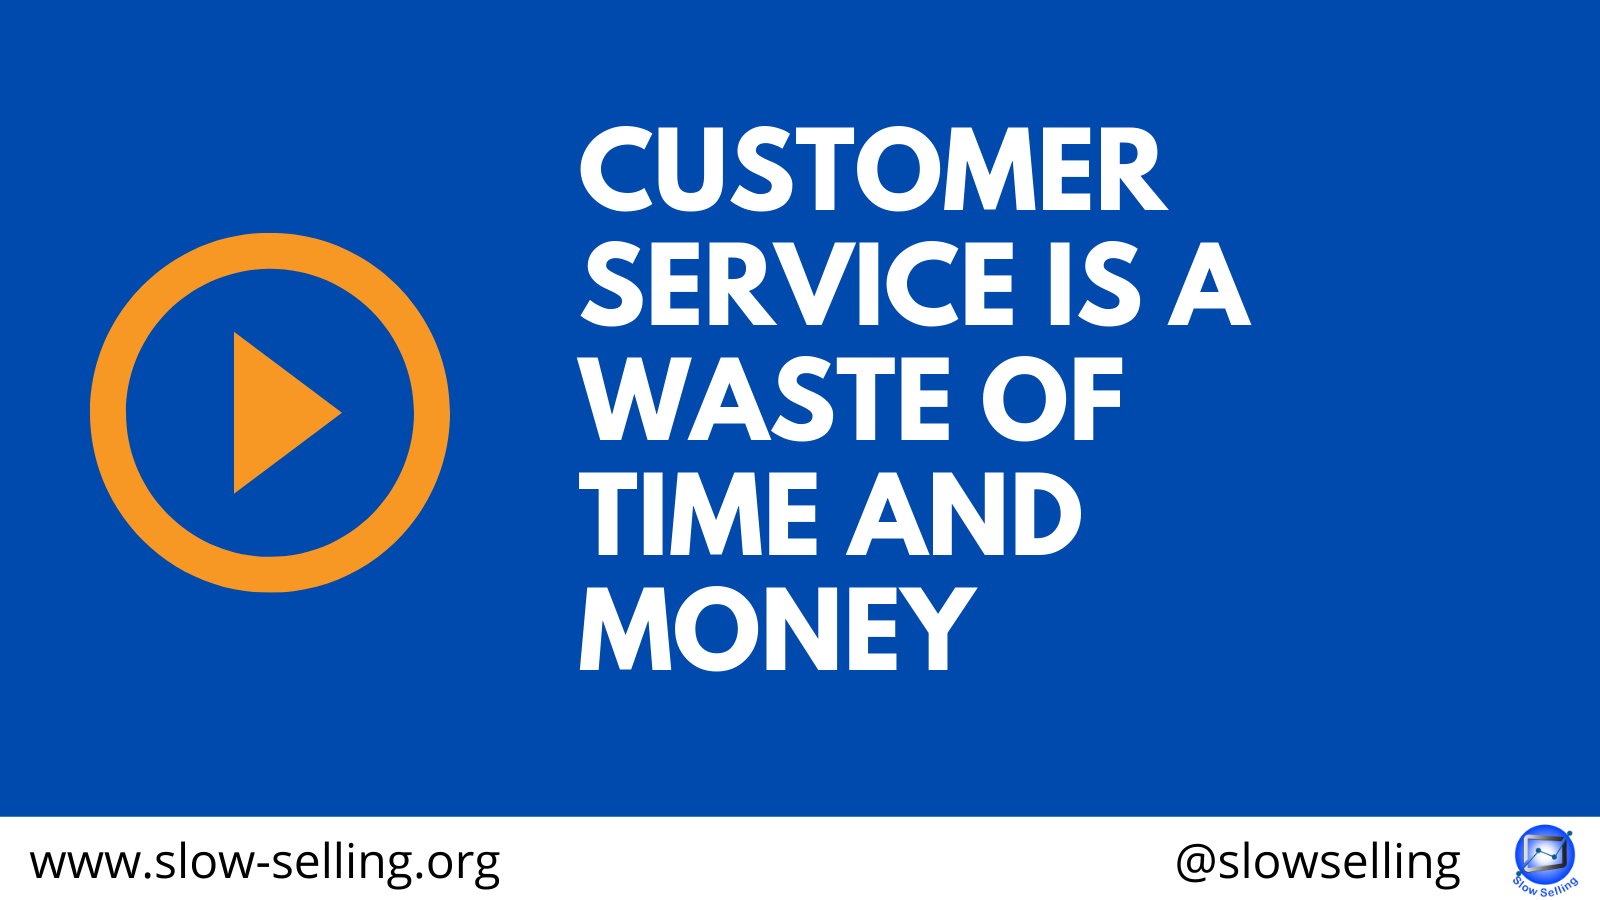 CUSTOMER SERVICE IS A WASTE OF TIME AND MONEY